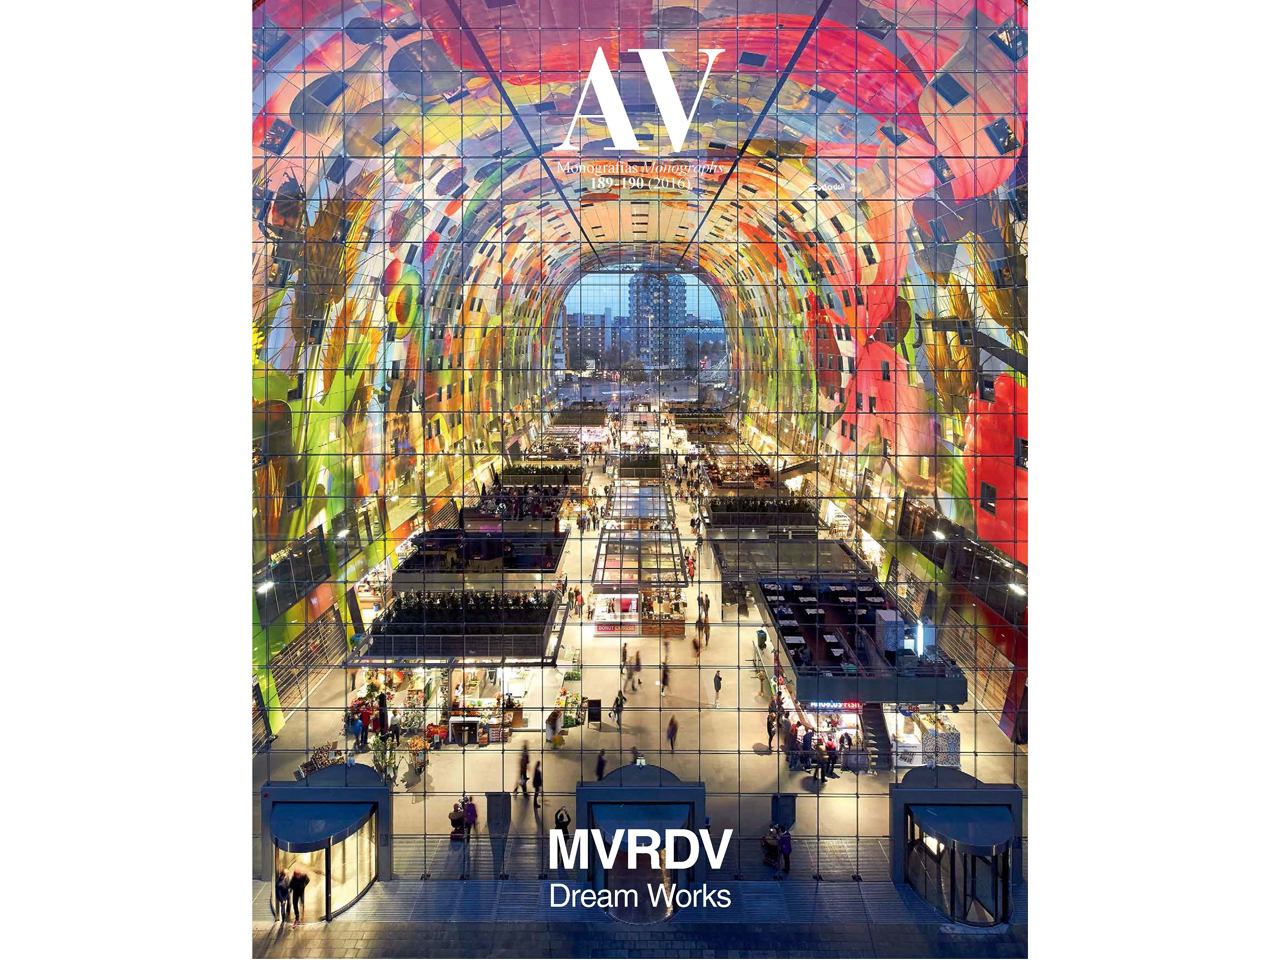 AV Monographs - MVRDV Dream Works